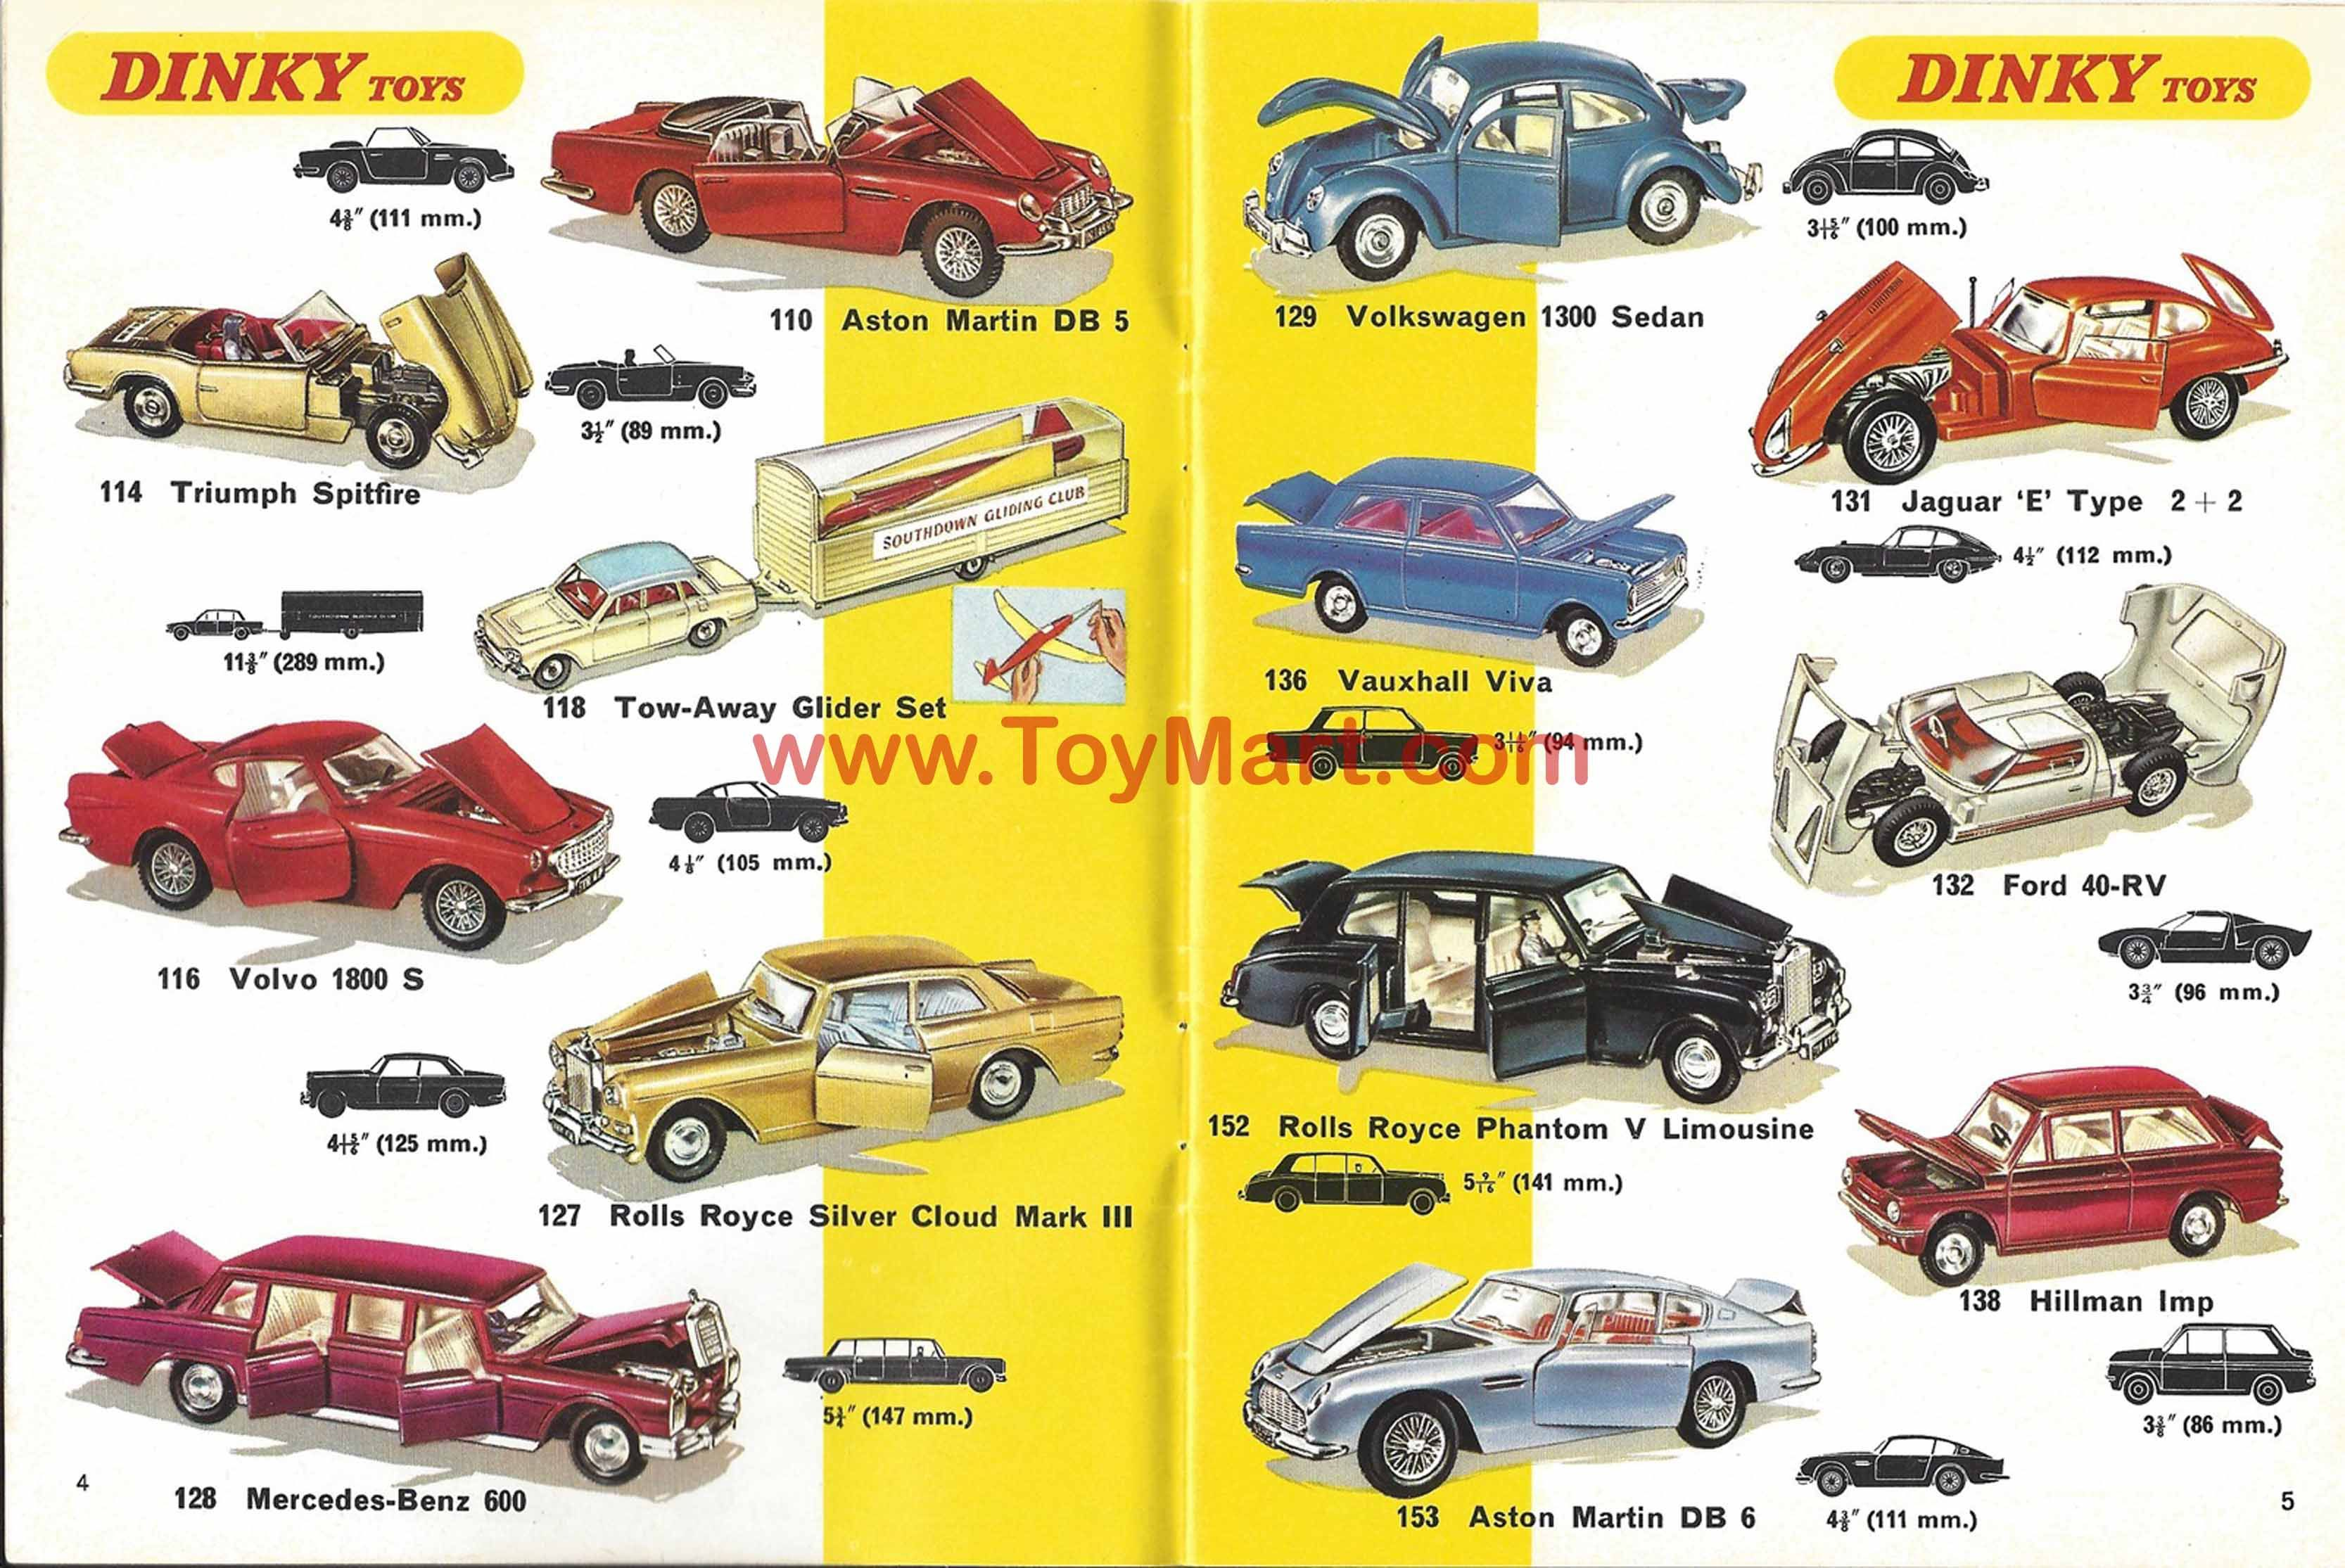 Dinky Toys Catalogue 1969 Cover Dinky Toys Catalogues